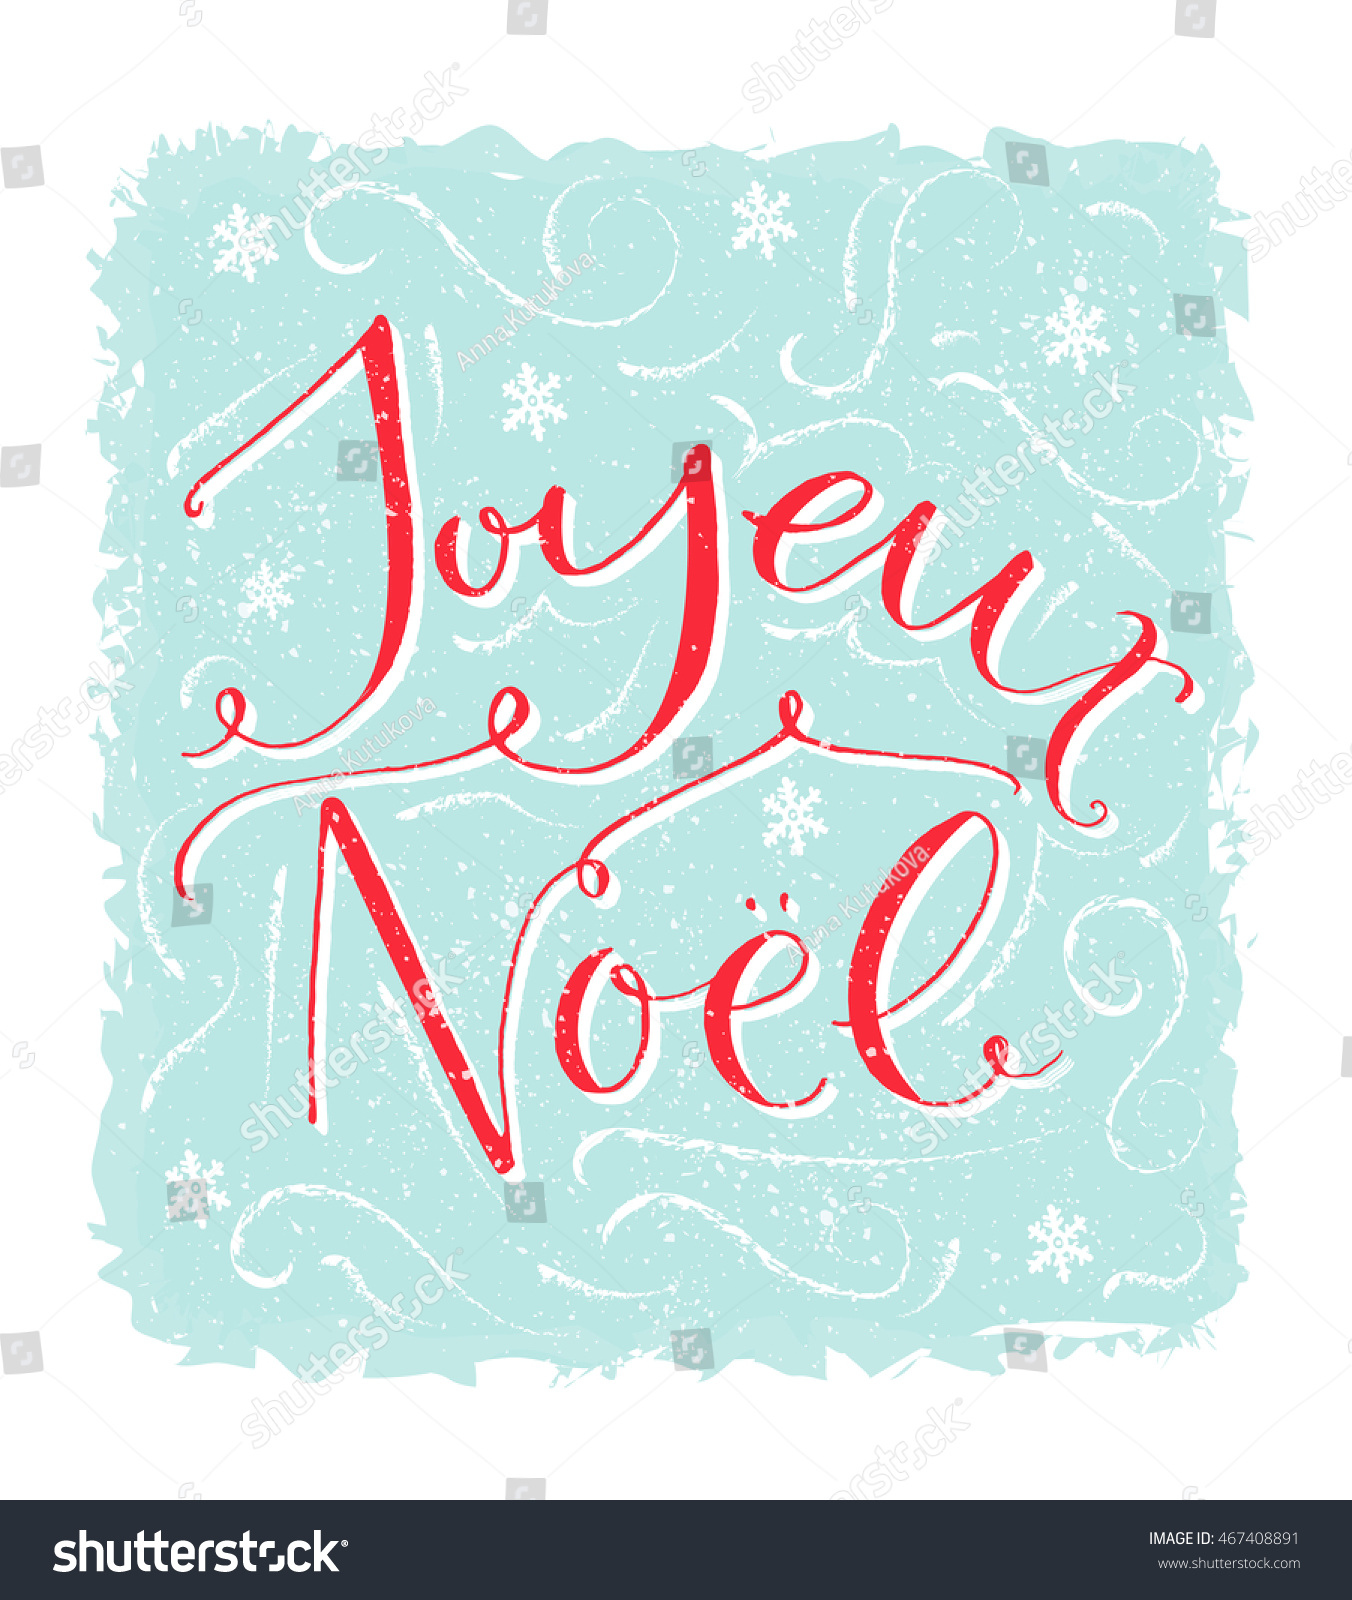 joyeux noel french saying means merry stock vector. Black Bedroom Furniture Sets. Home Design Ideas